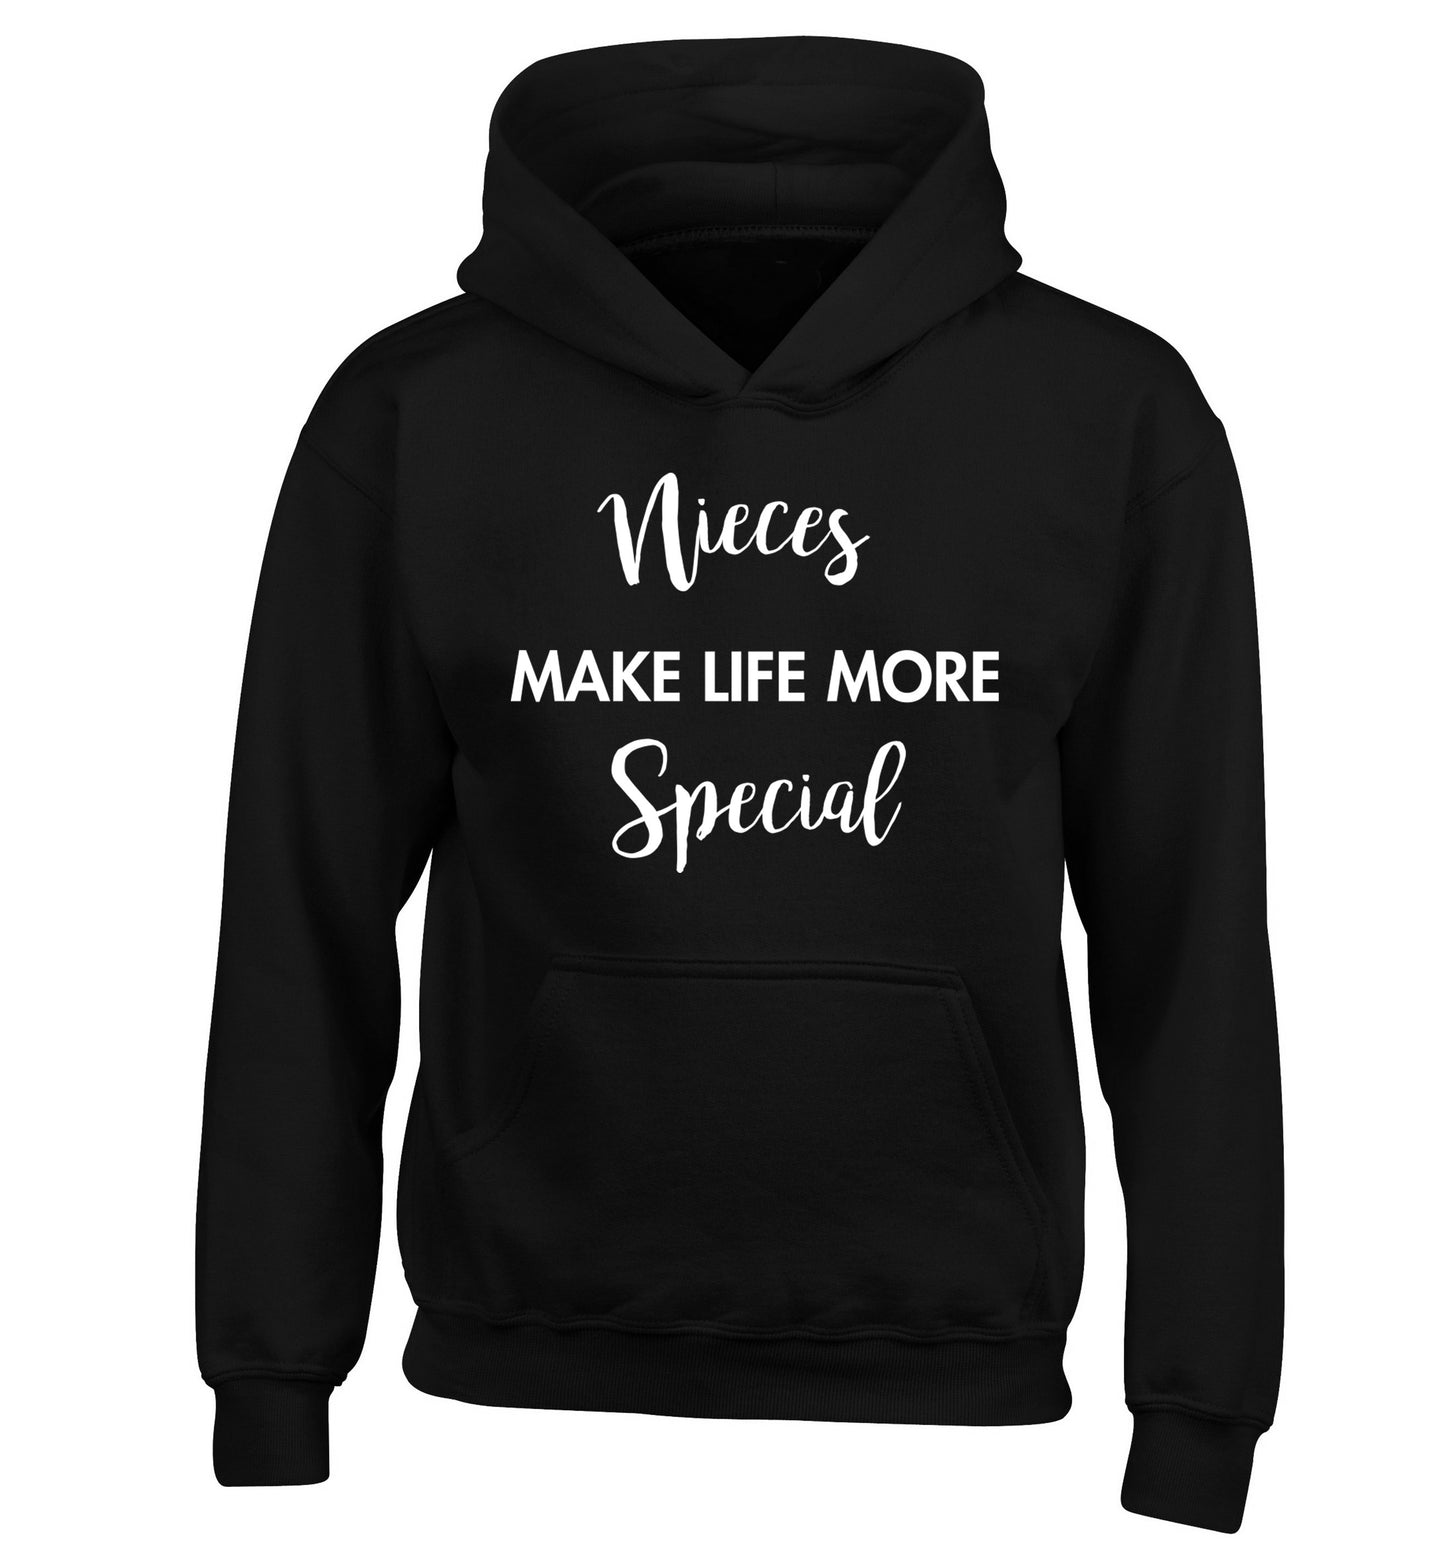 Nieces make life more special children's black hoodie 12-14 Years